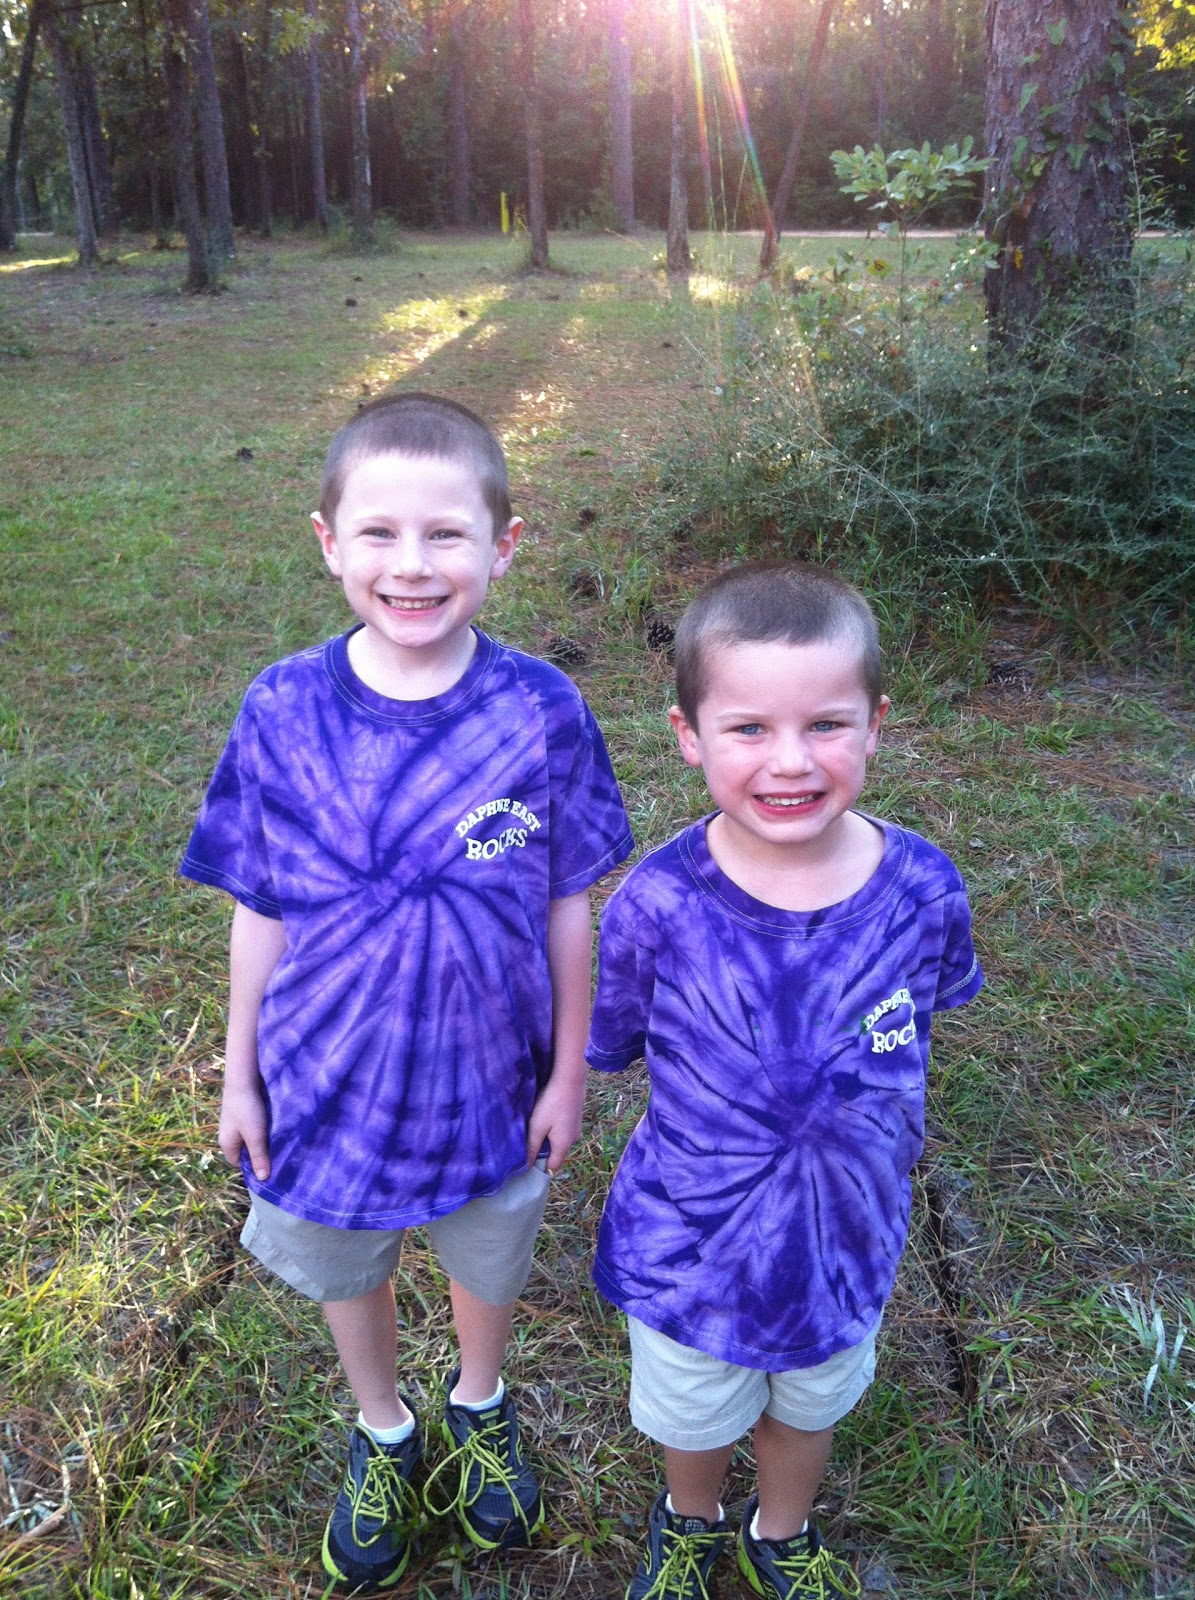 Road Runner Girl: Cub Scouts Family Camping Trip!